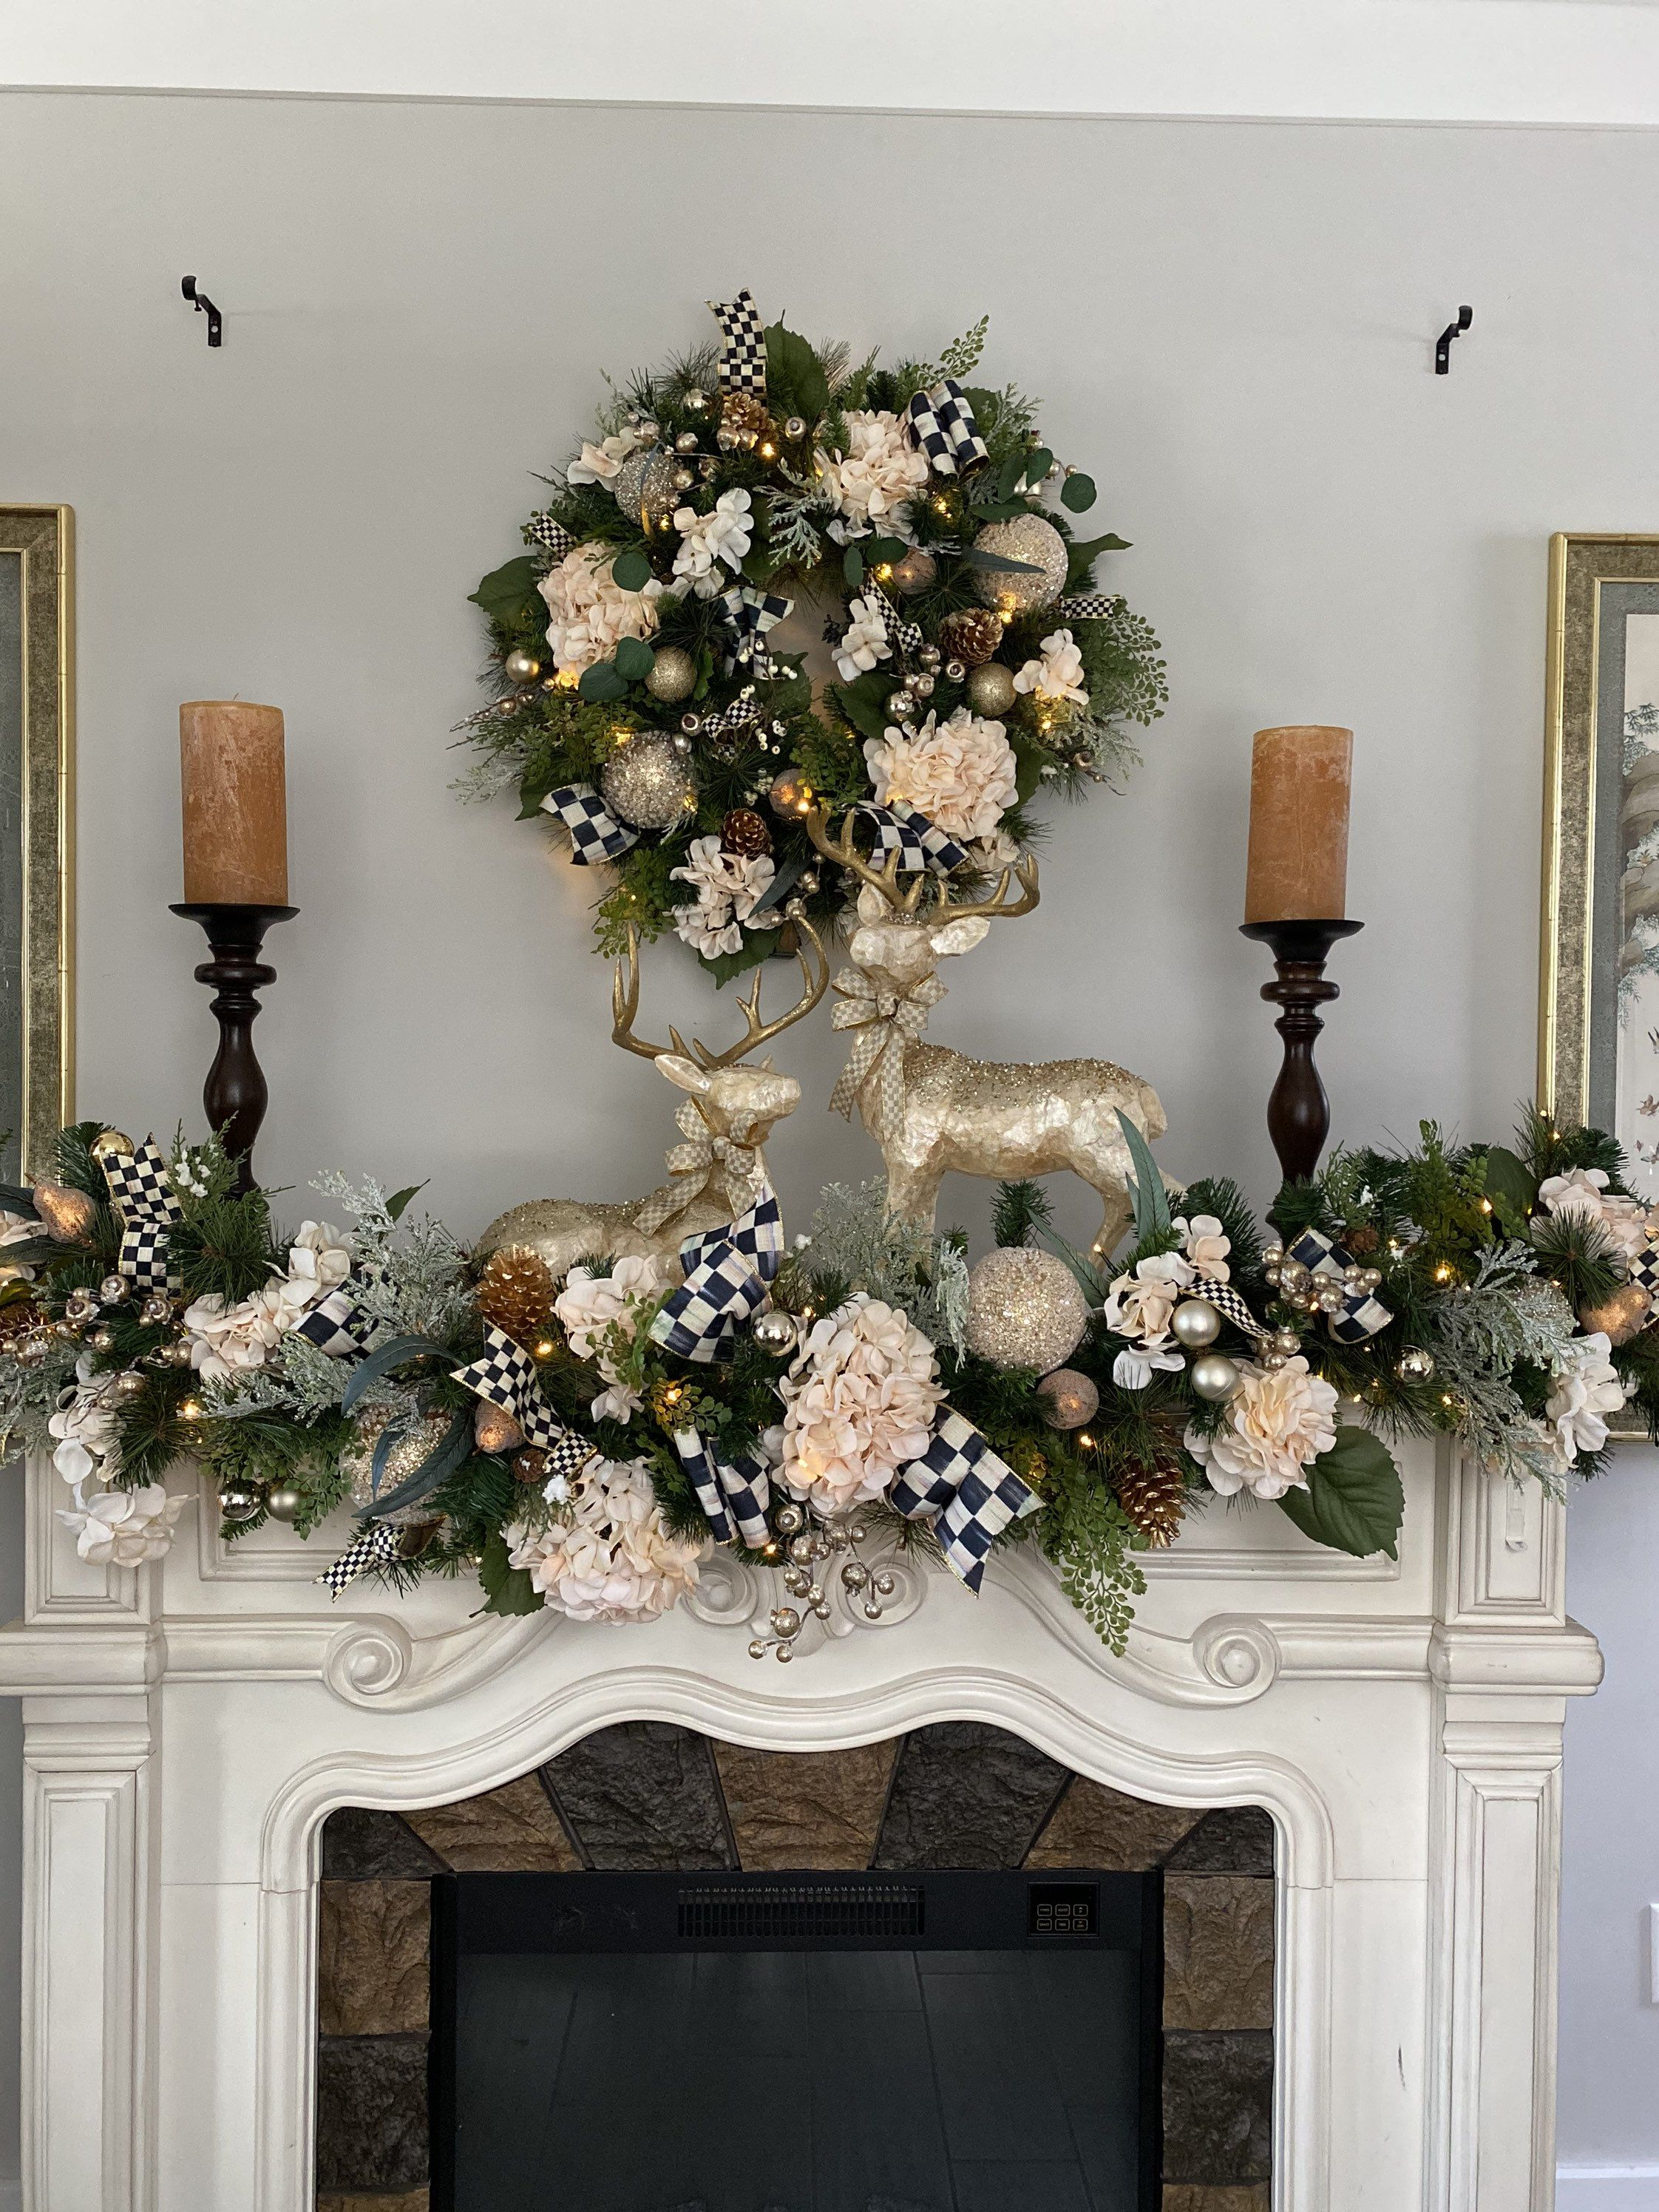 2 pc set Christmas Wreath and Garland, Pre-Lit, Co